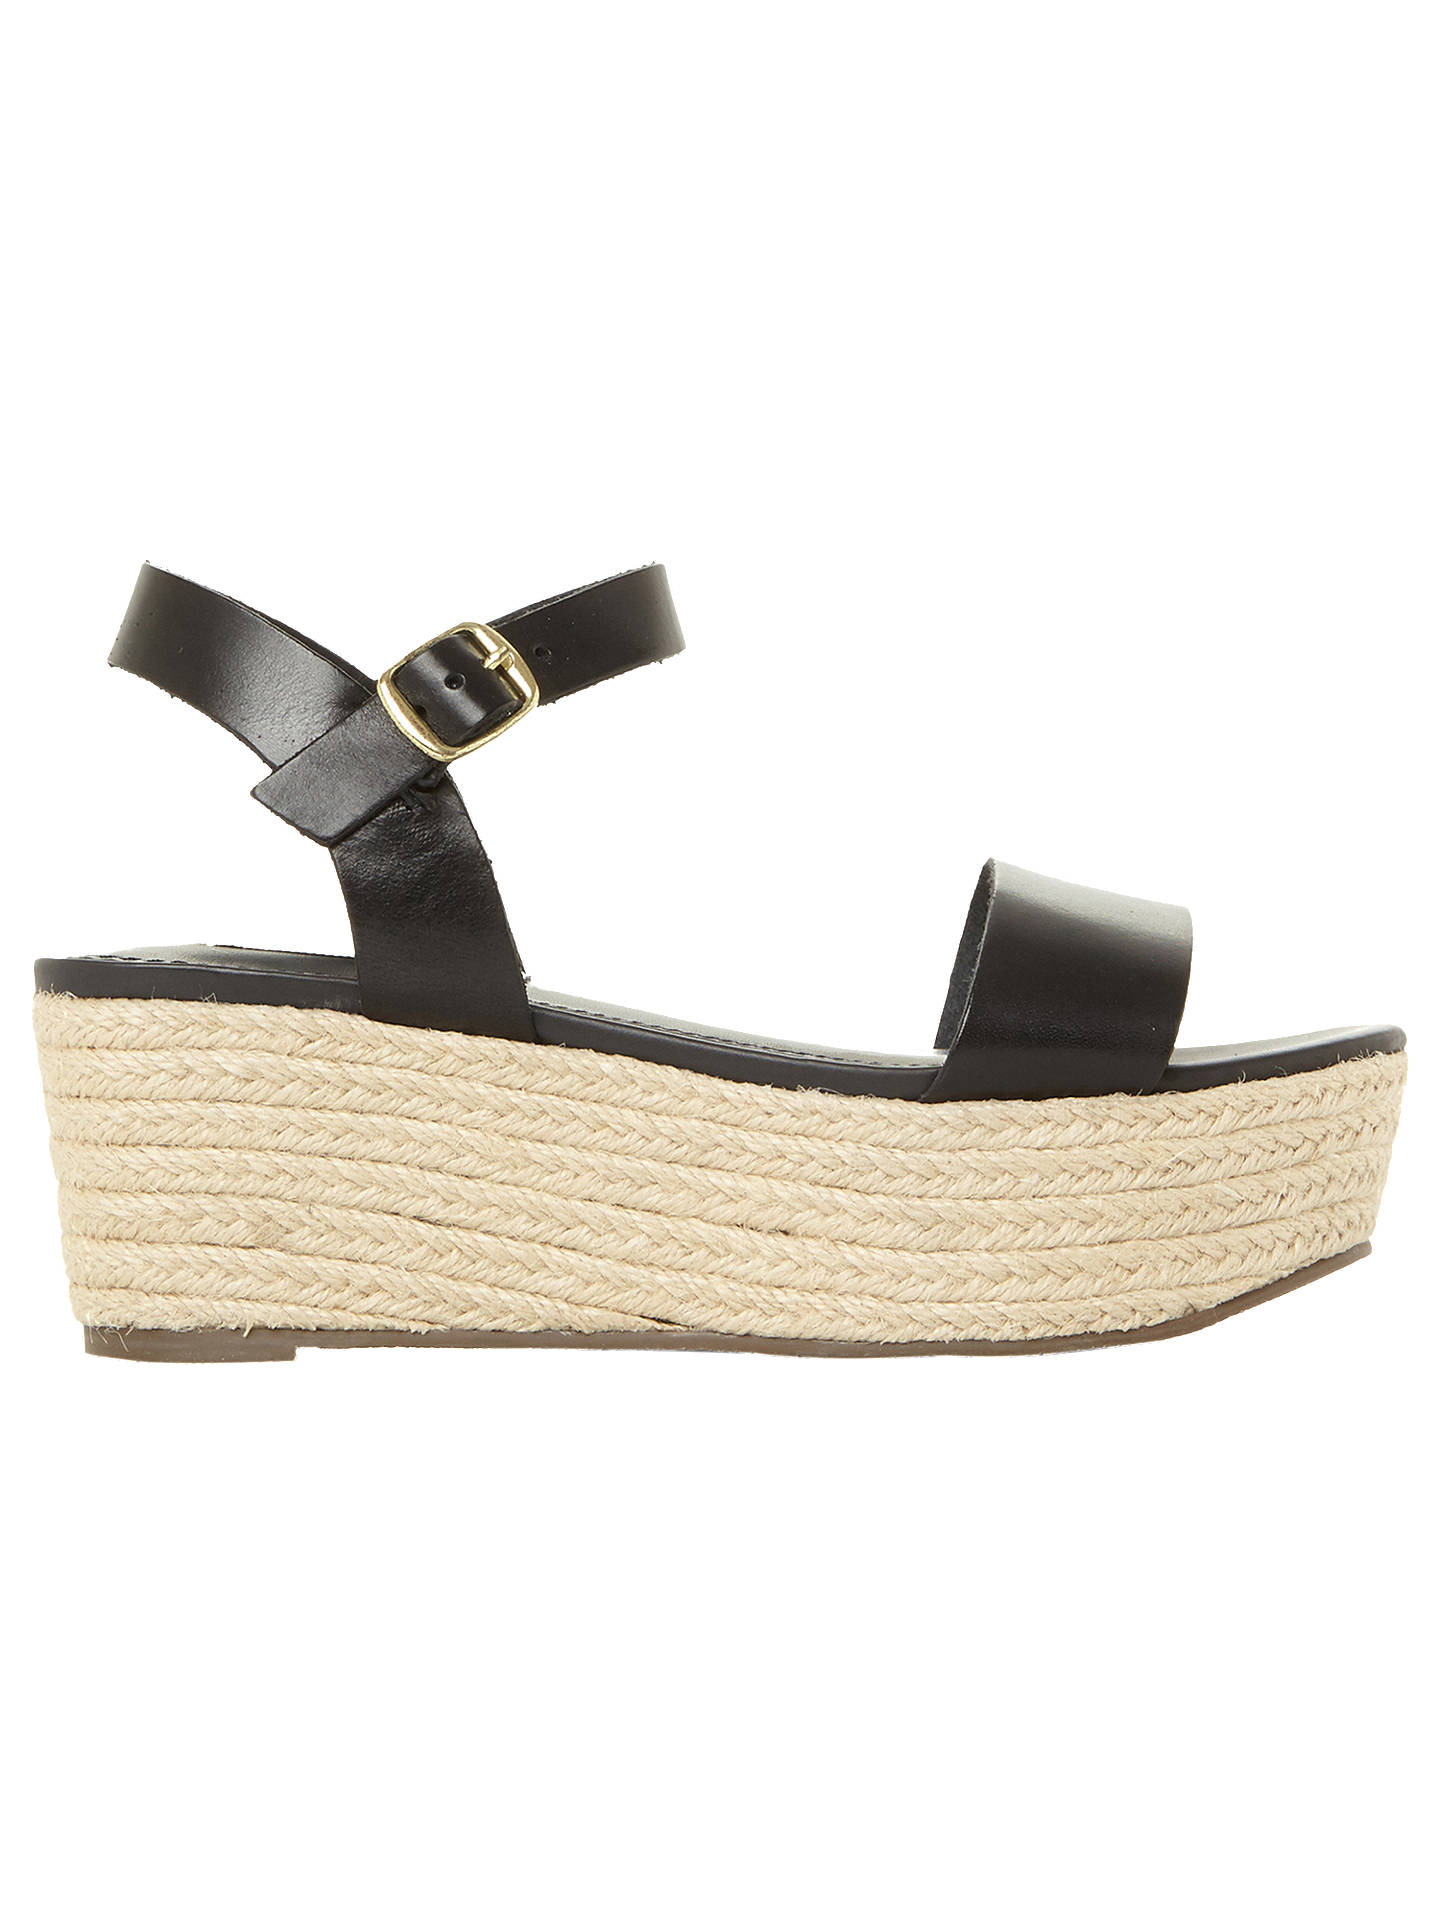 78020a27f Buy Steve Madden Busy Flatform Sandals, Black Leather, 3 Online at  johnlewis.com ...